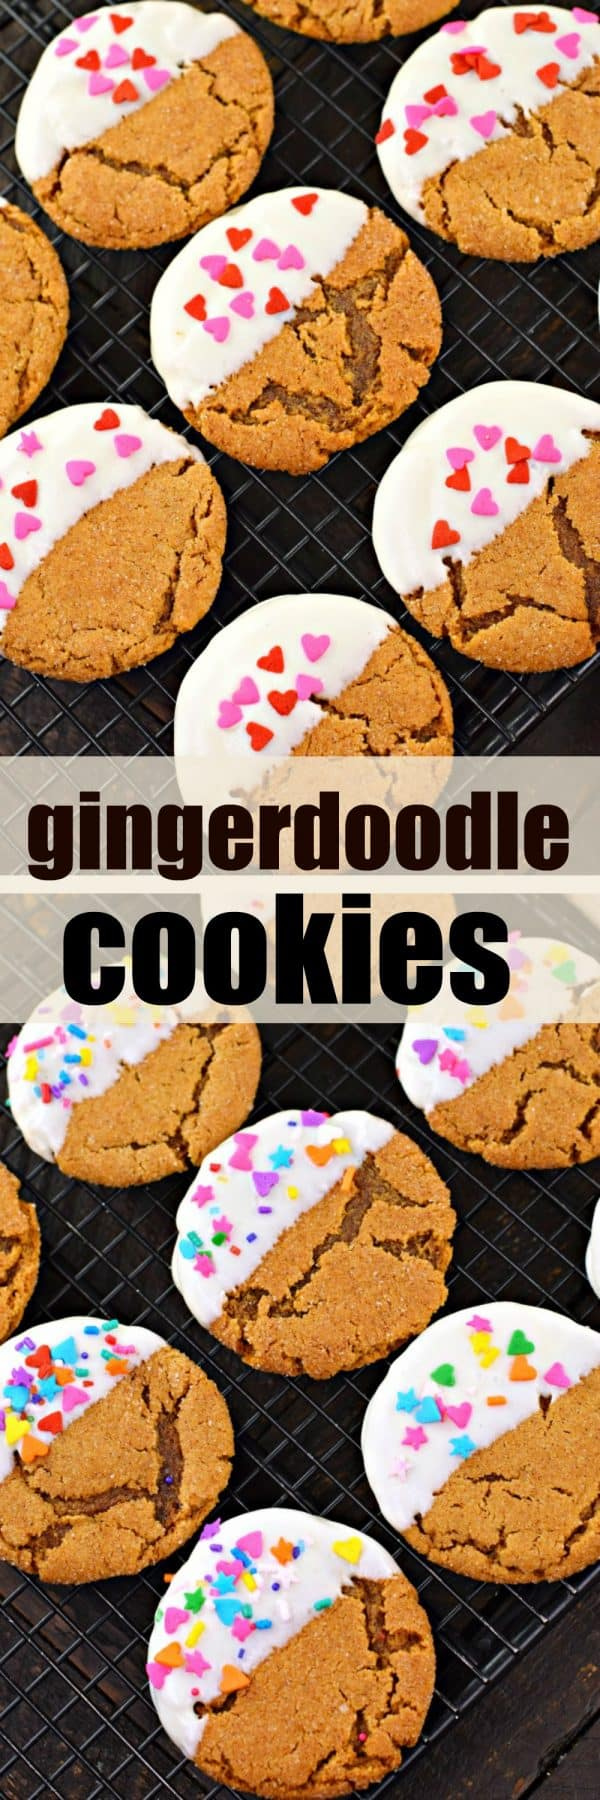 Chewy Gingerdoodle Cookies #whitechocolate #snickerdoodle #gingersnap #cookie #cookies #holiday